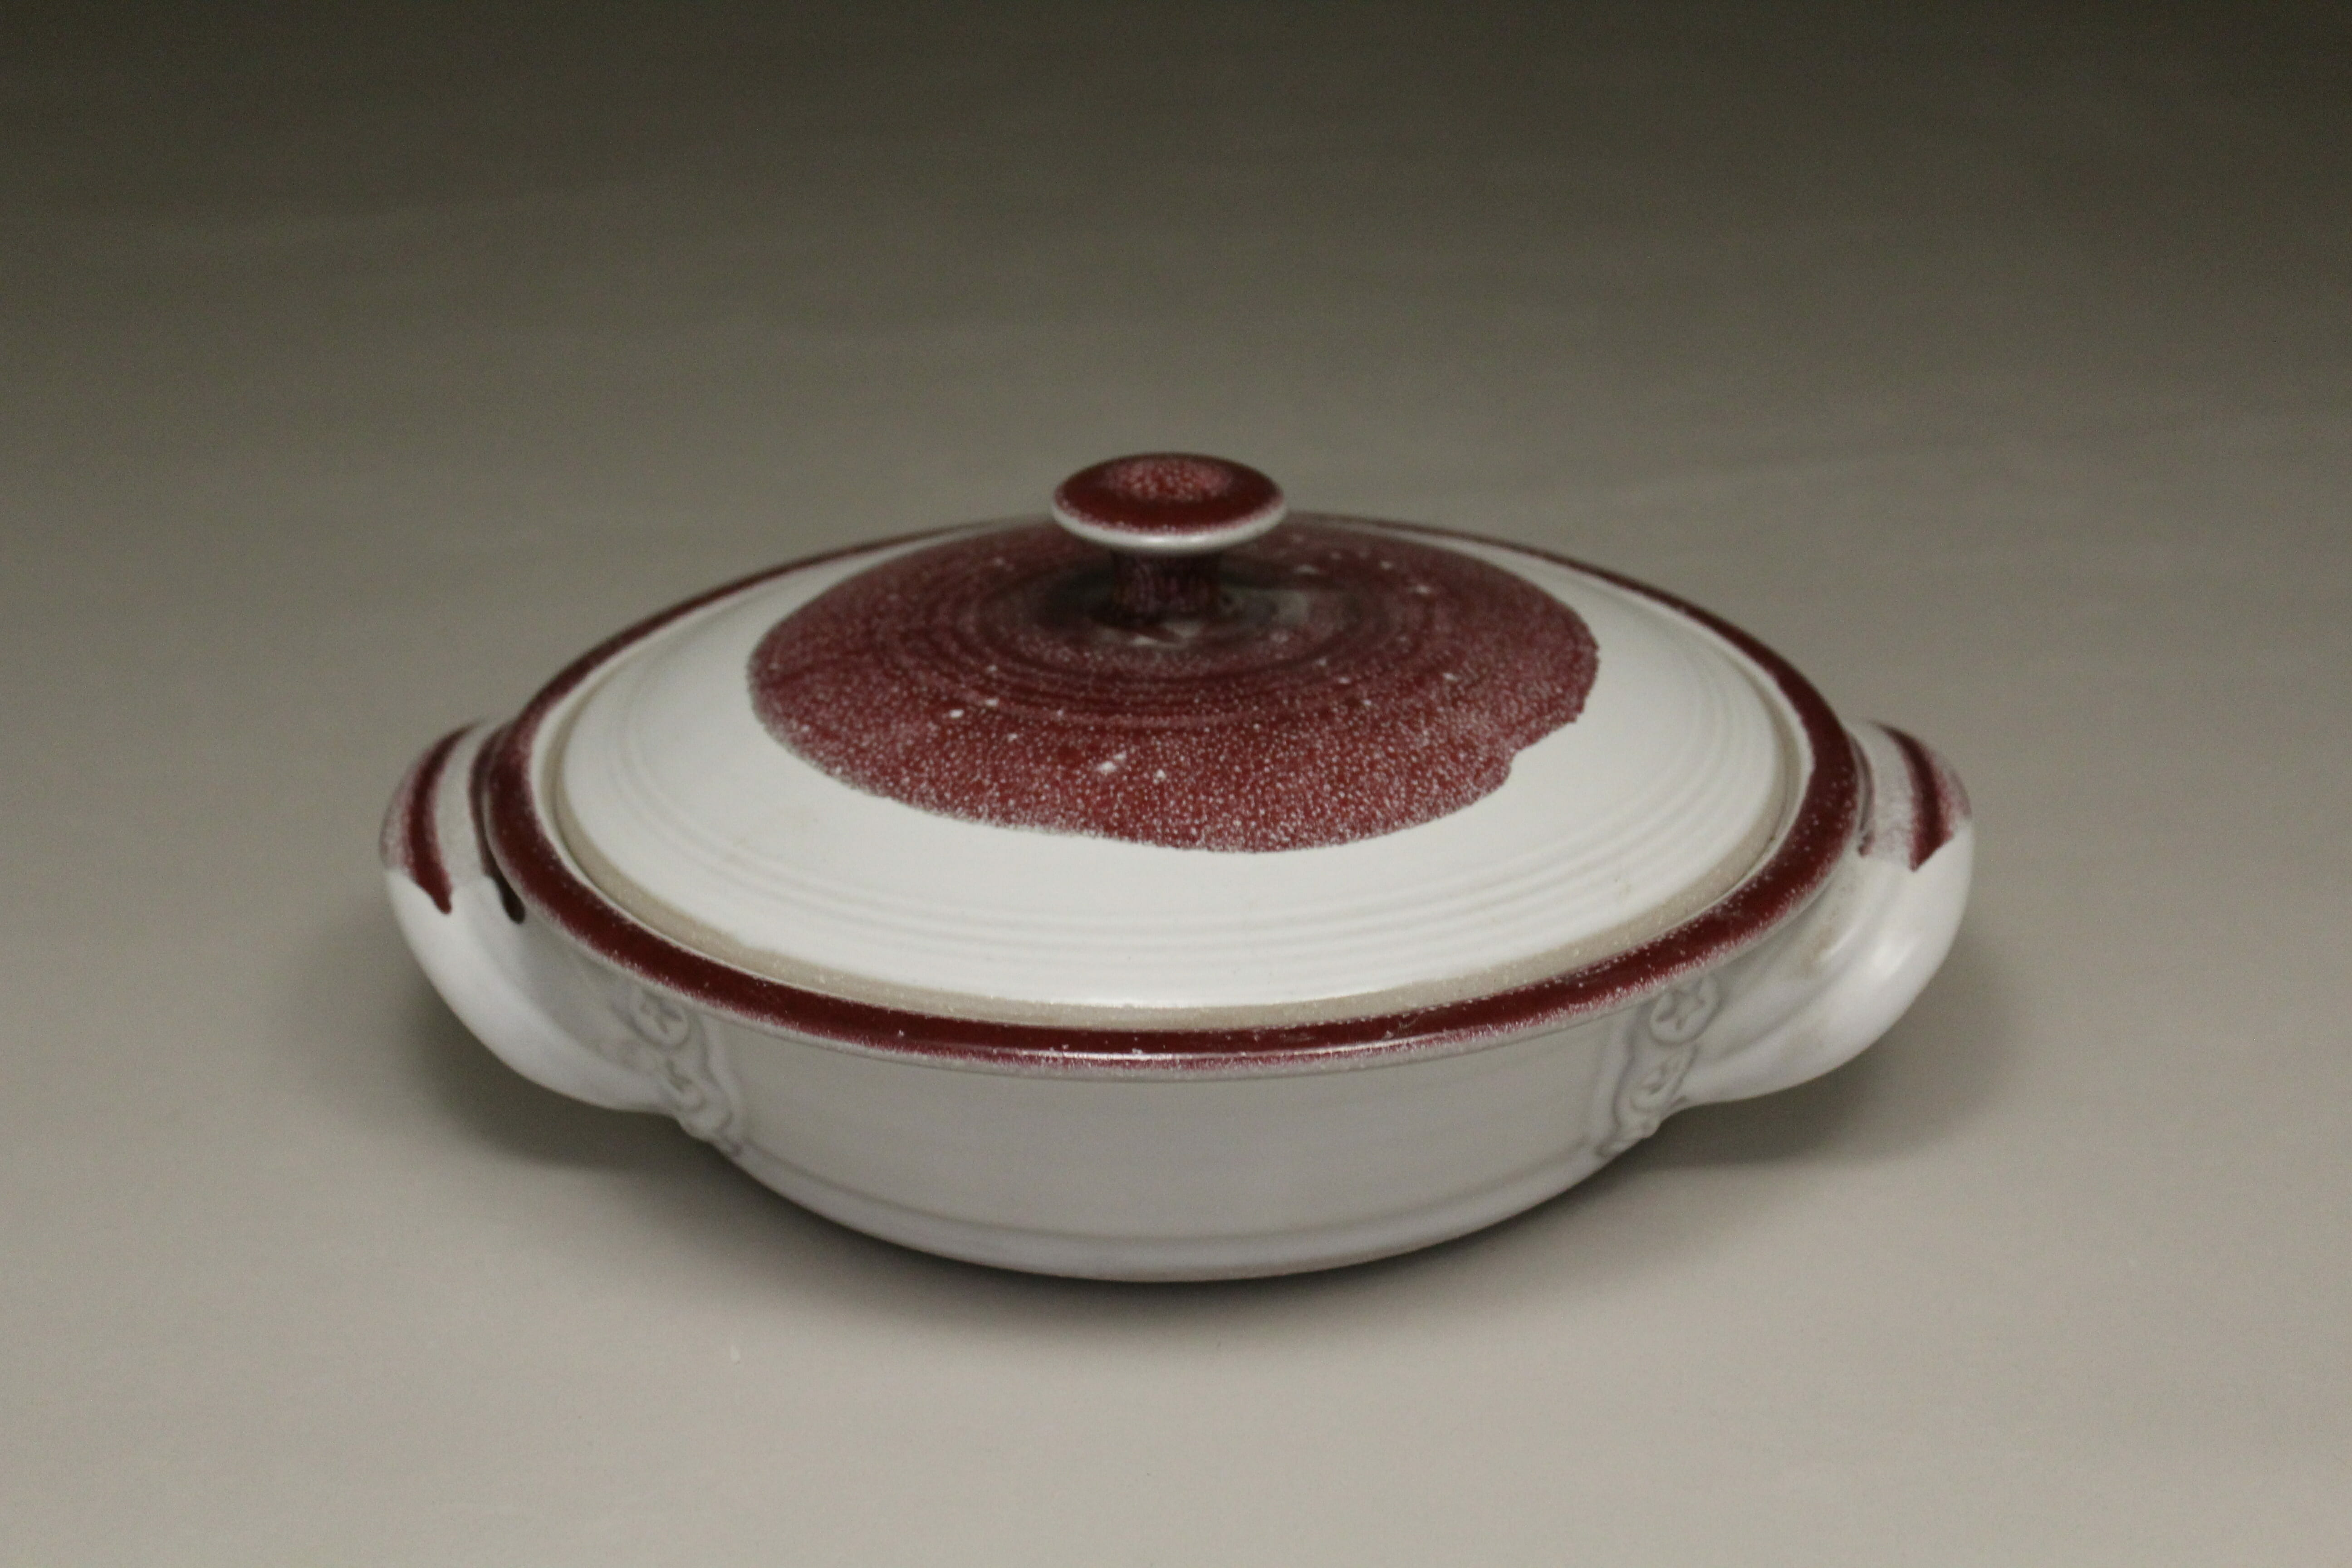 Tortilla Warmer Smooth Design in White and Red Glaze